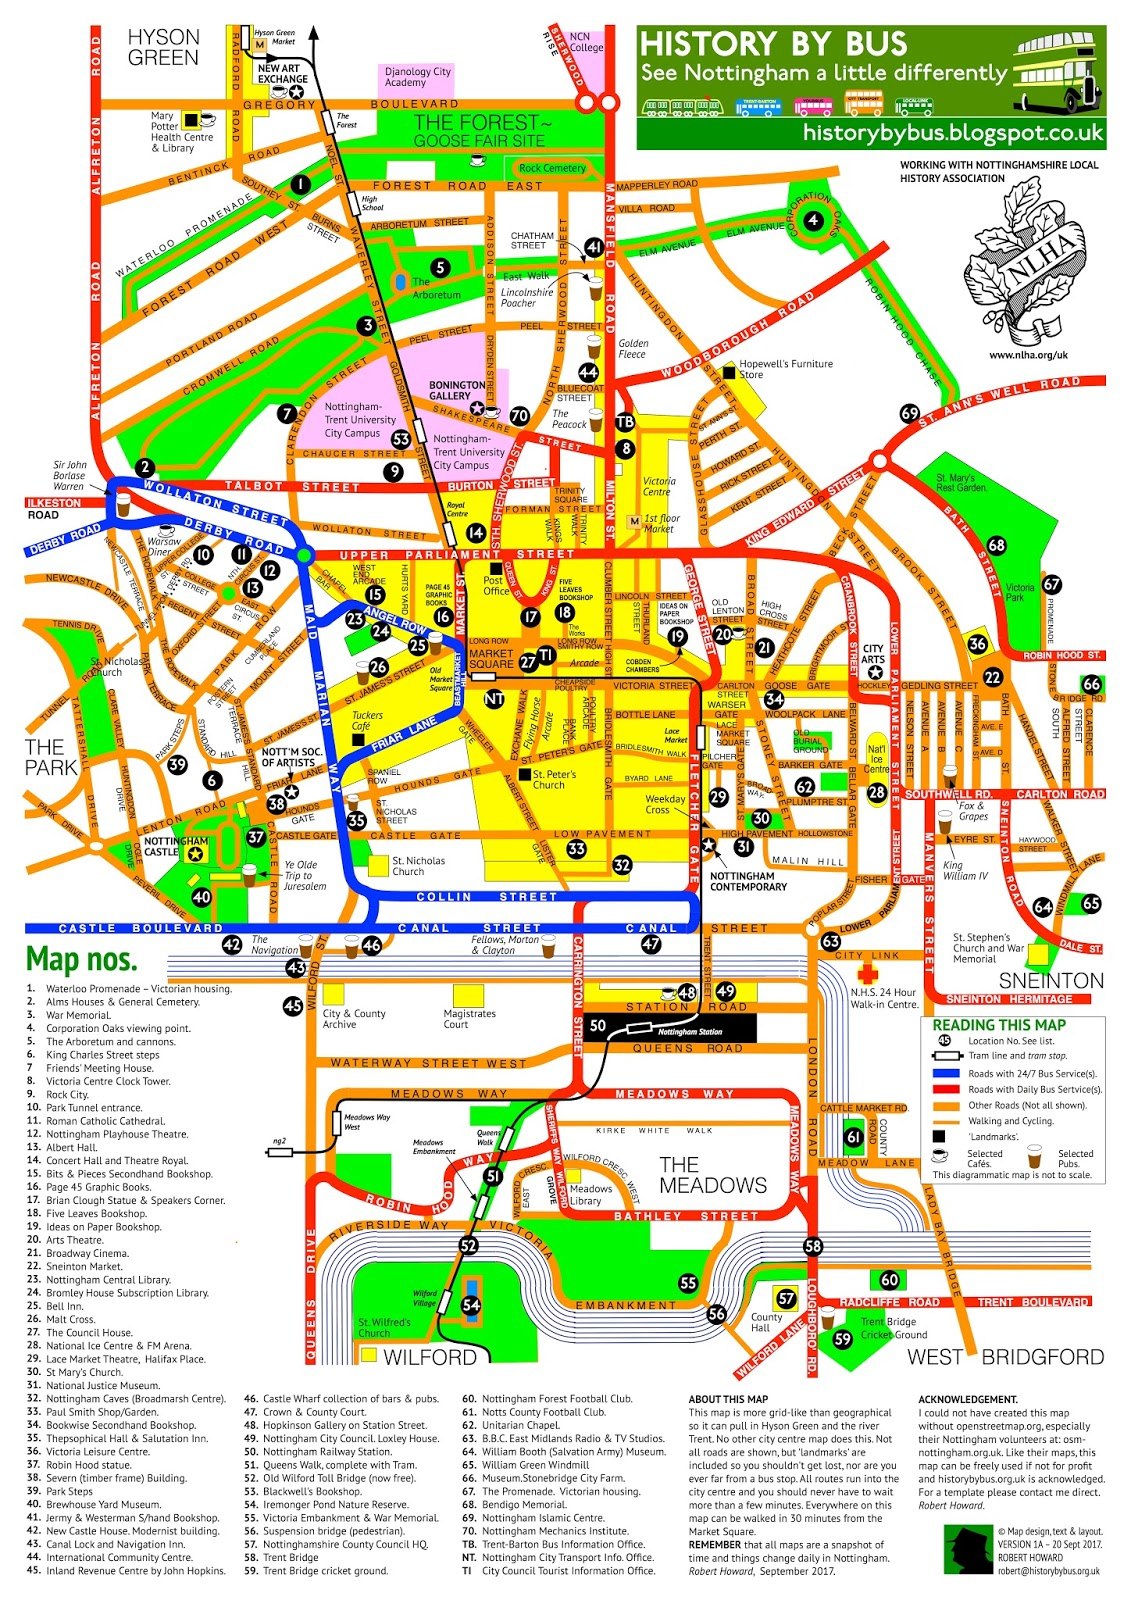 BeestonWeek: New version of Nottingham City Centre Map on